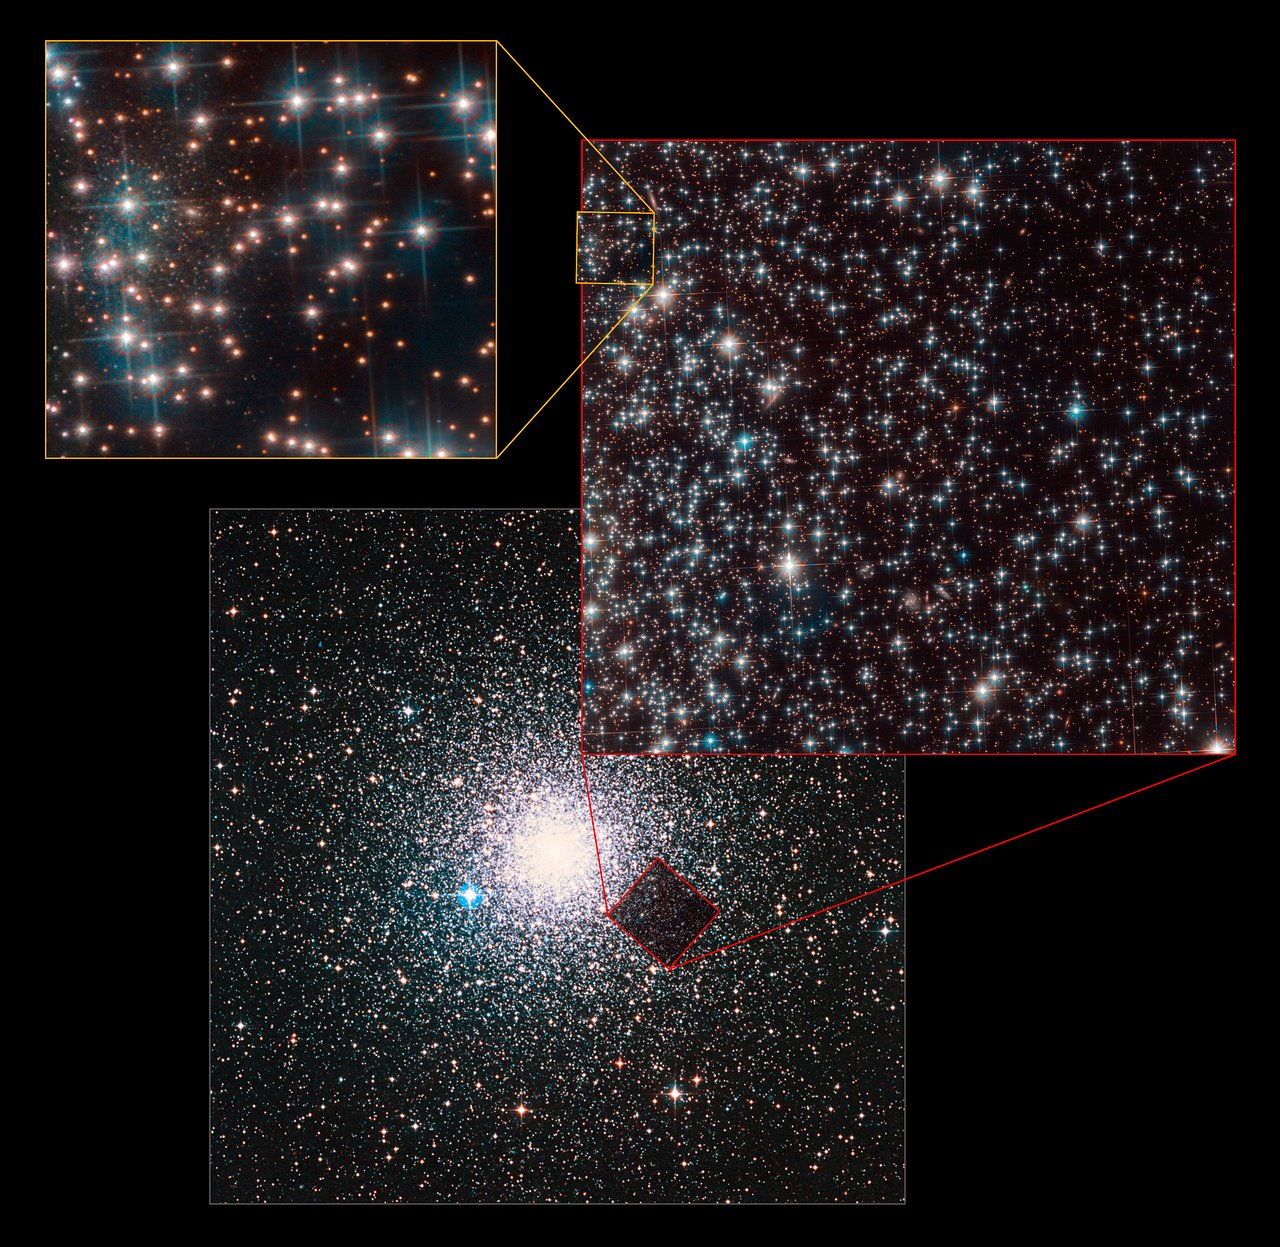 Hubble Fortuitously Discovers New Galaxy In Cosmic Neighborhood